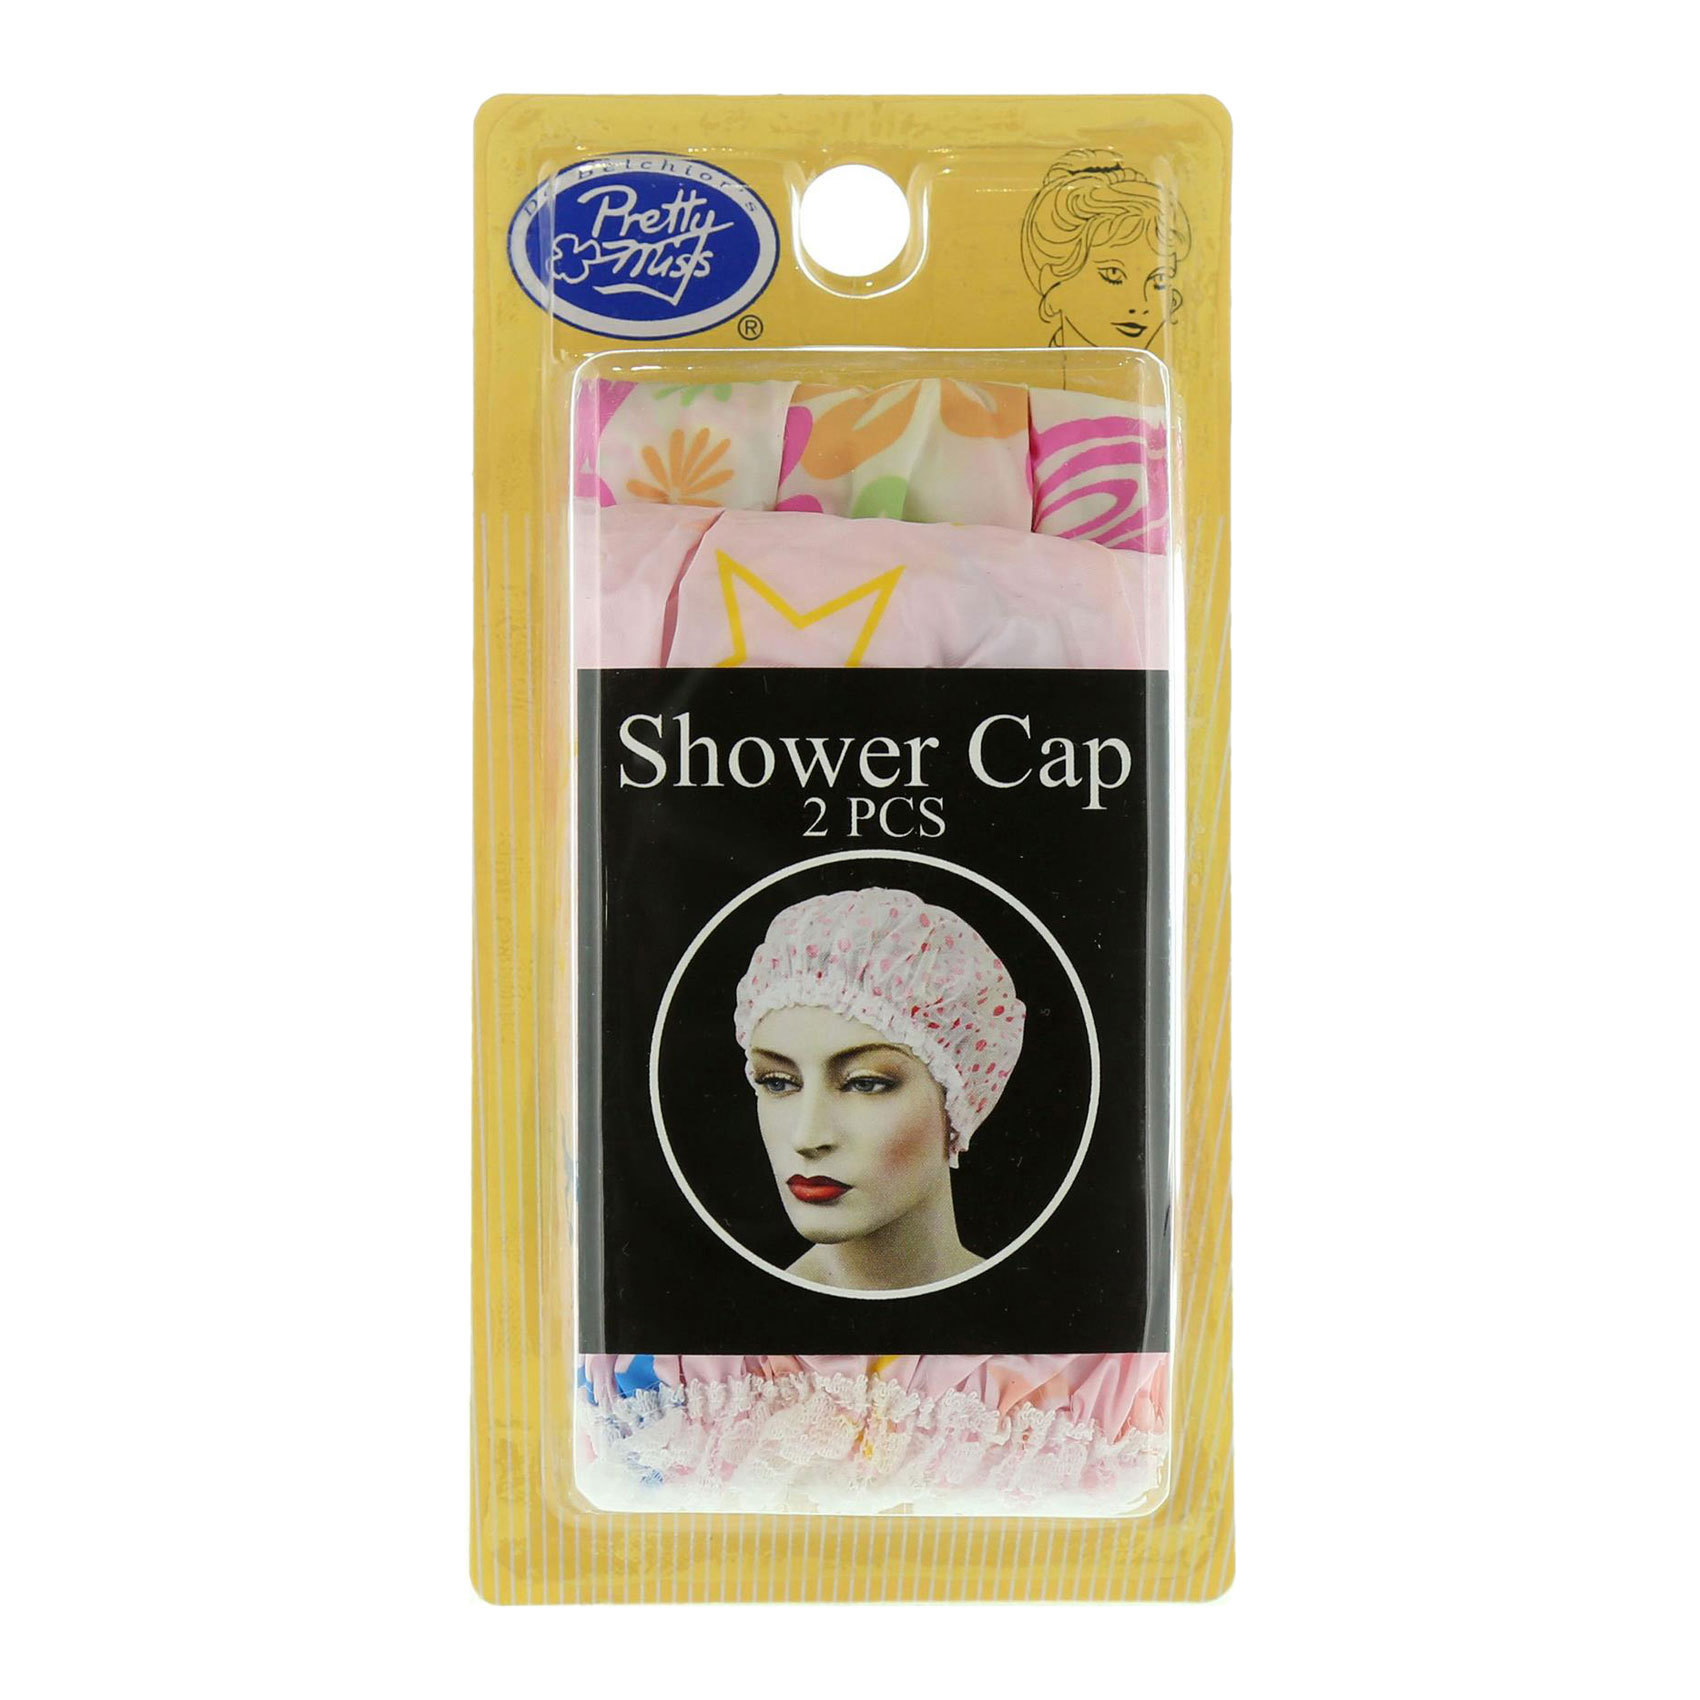 PRETTY MISS SHOWER CAP 41128